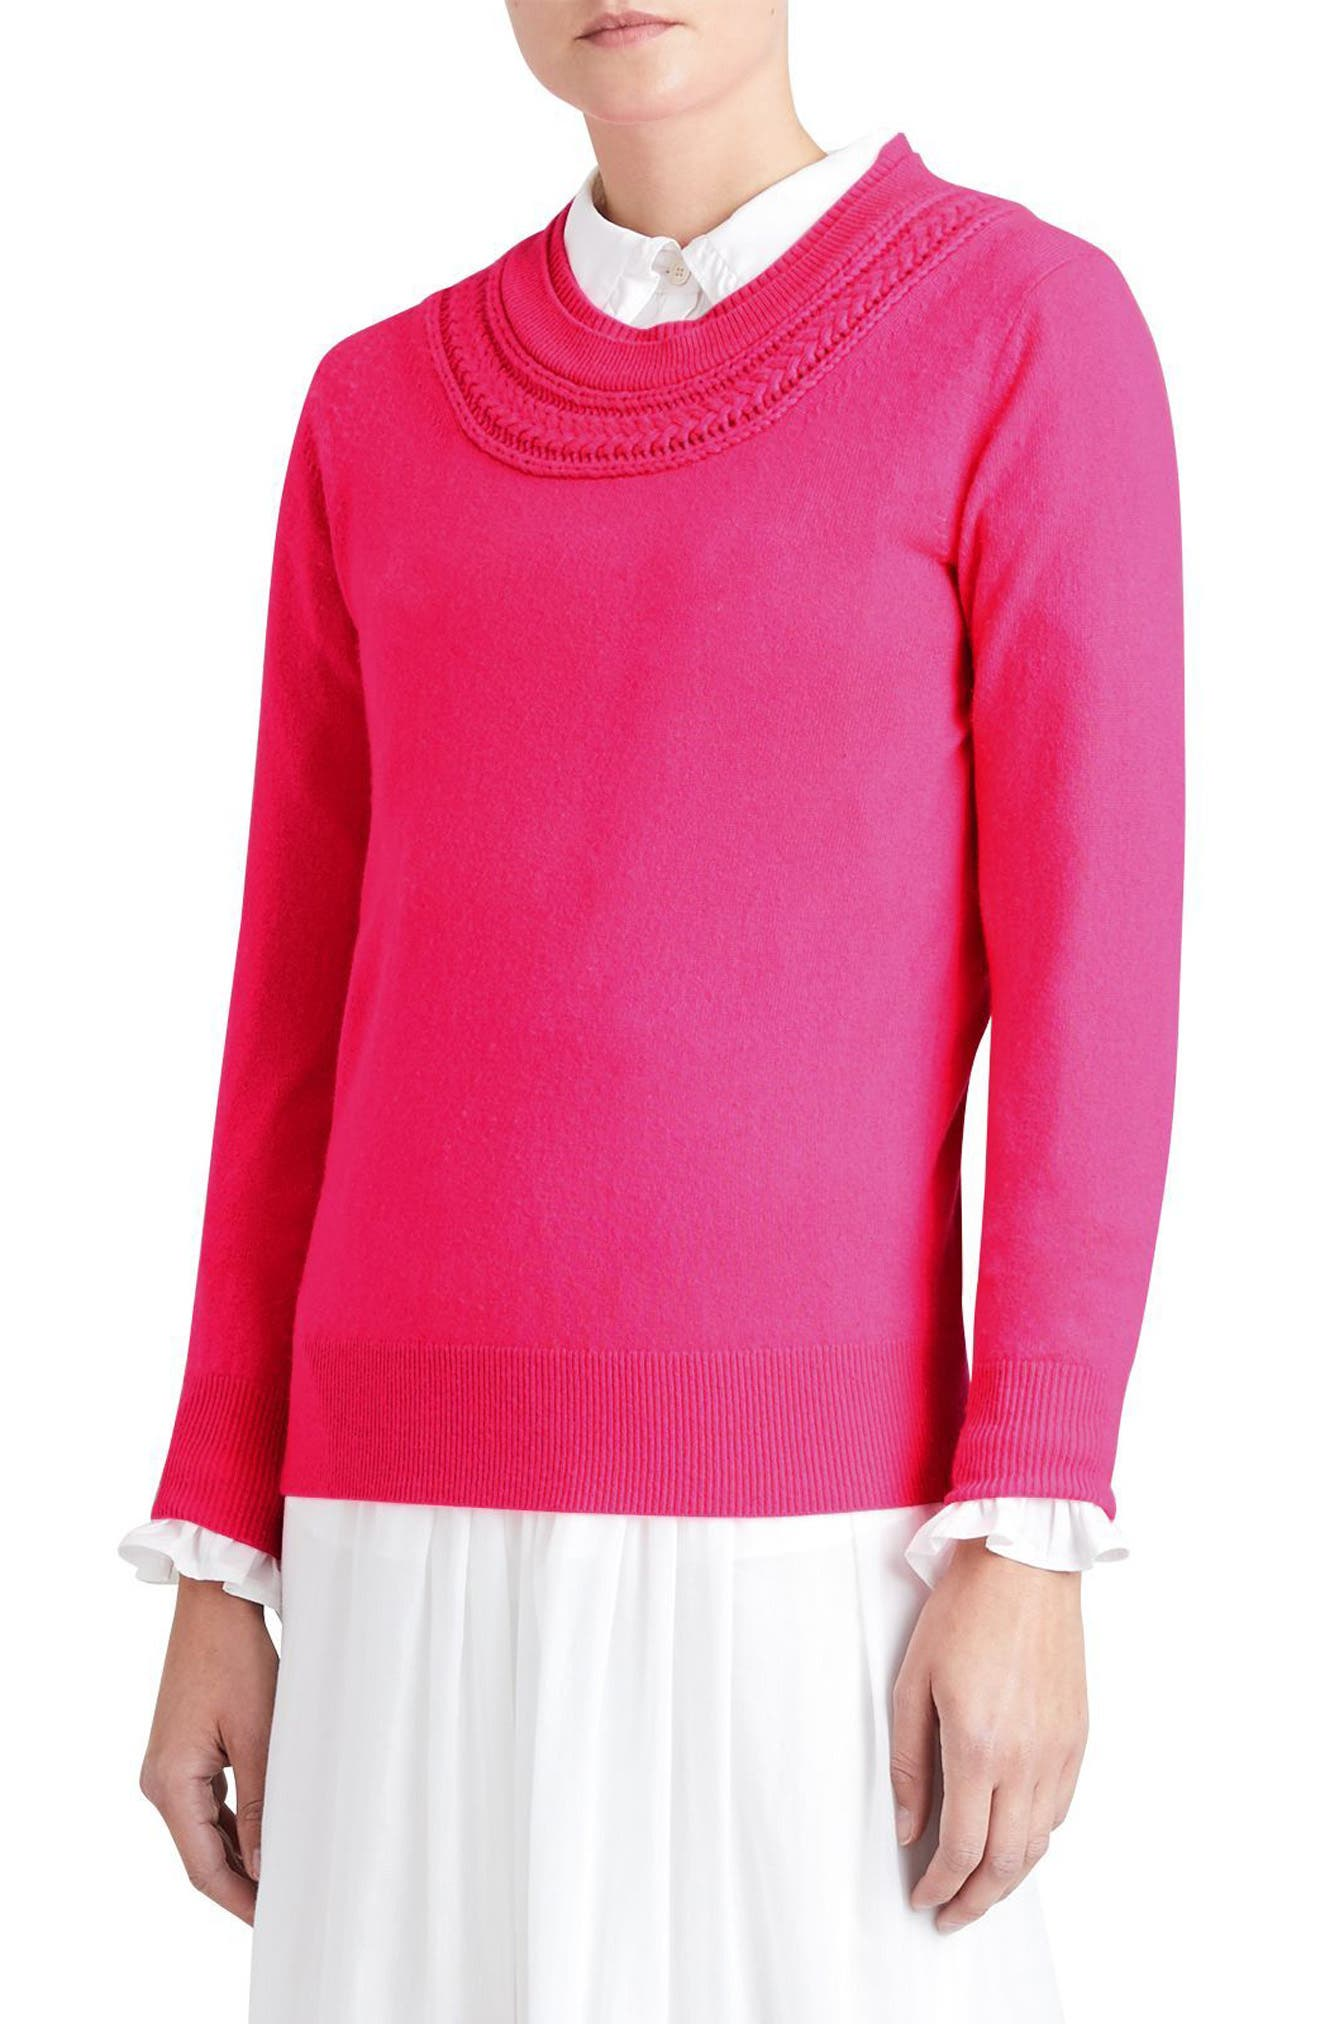 Guadaira Cashmere Sweater,                             Alternate thumbnail 4, color,                             Bright Rose Pink